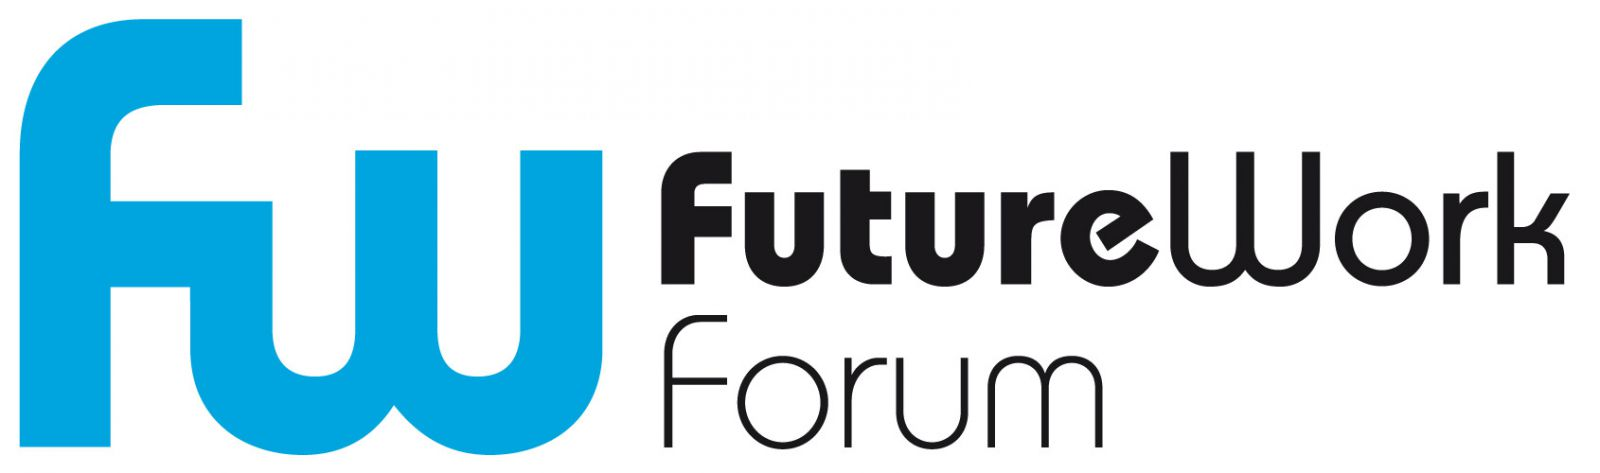 FutureWork Forum